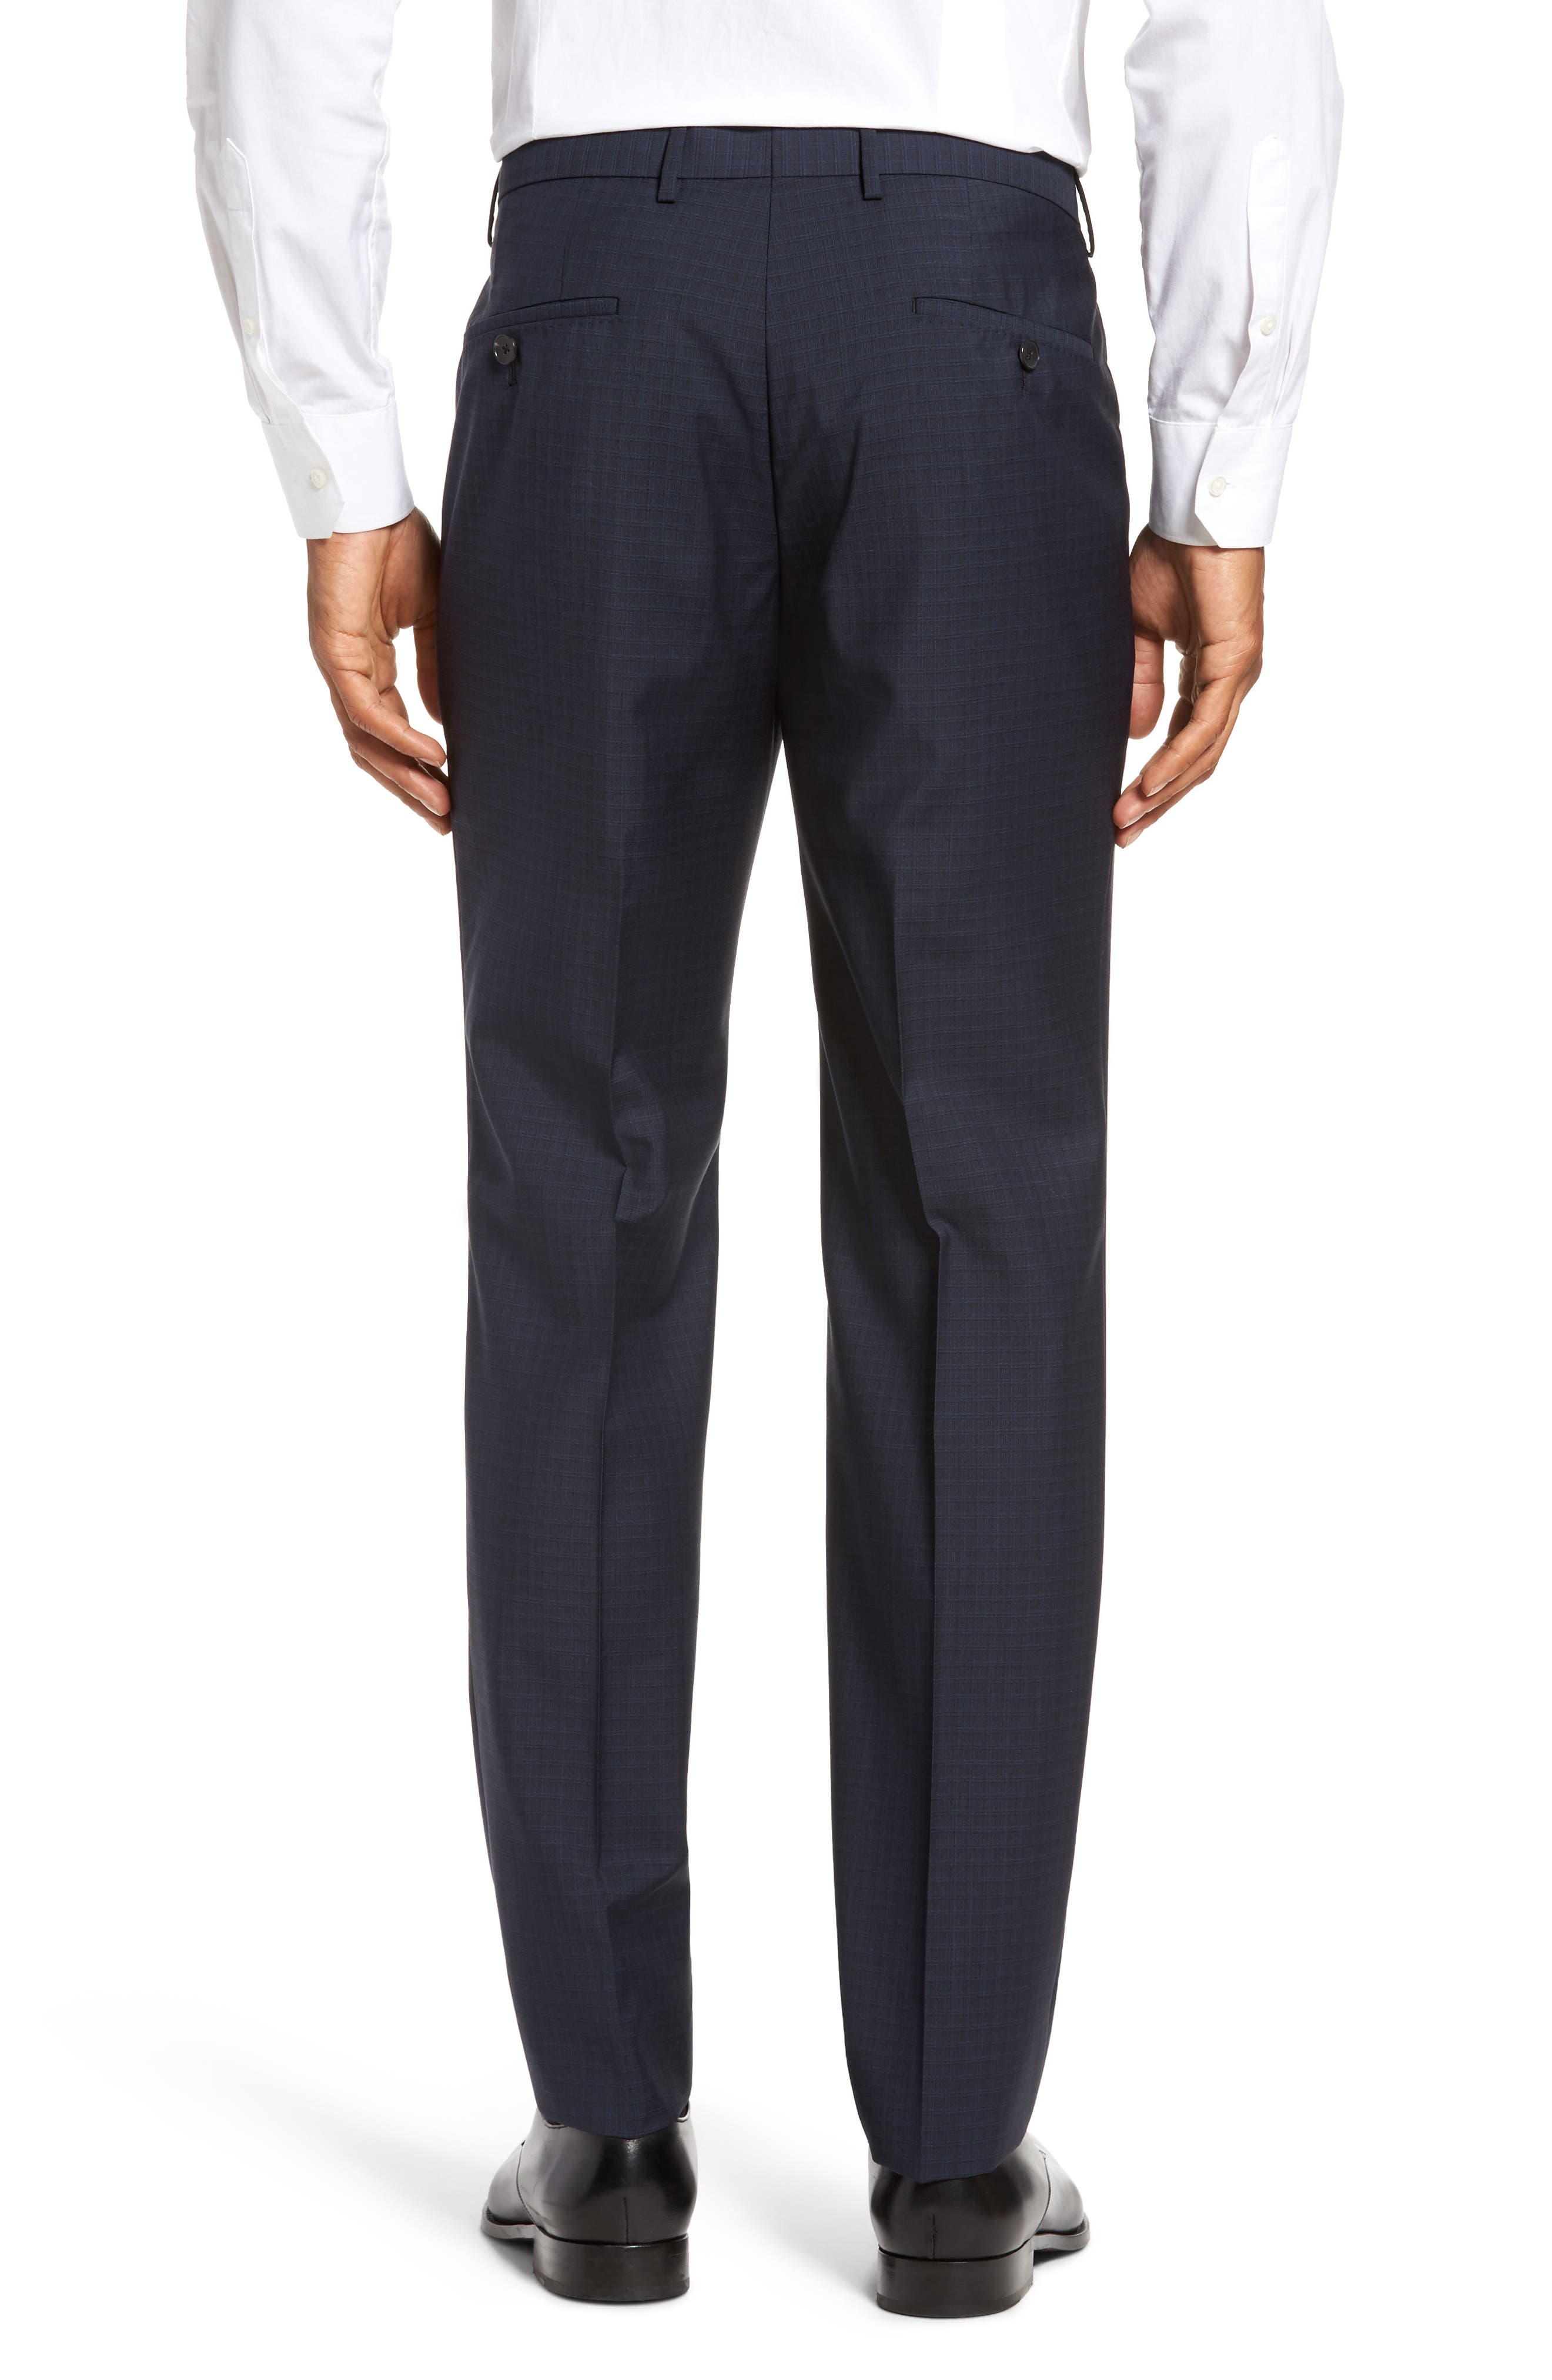 Benso Flat Front Check Wool Trousers,                             Alternate thumbnail 3, color,                             Navy